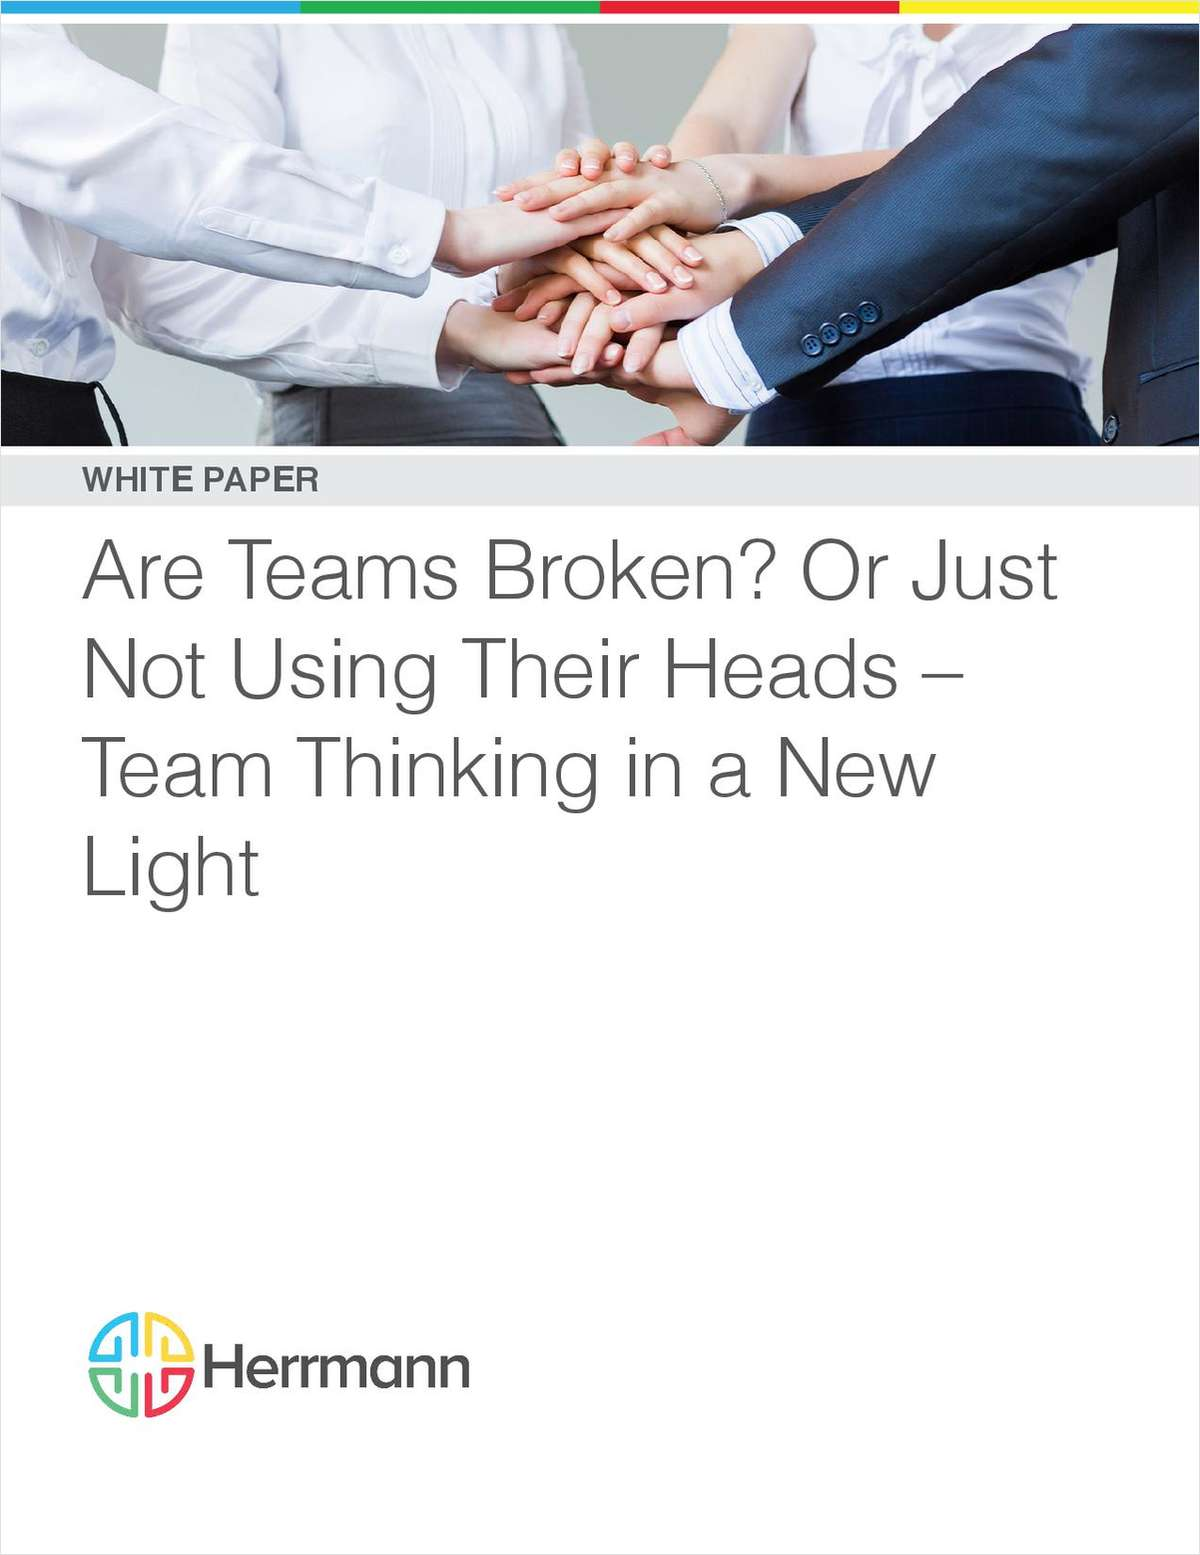 Are Teams Broken? Or Just Not Using Their Heads -- Team Thinking in a New Light